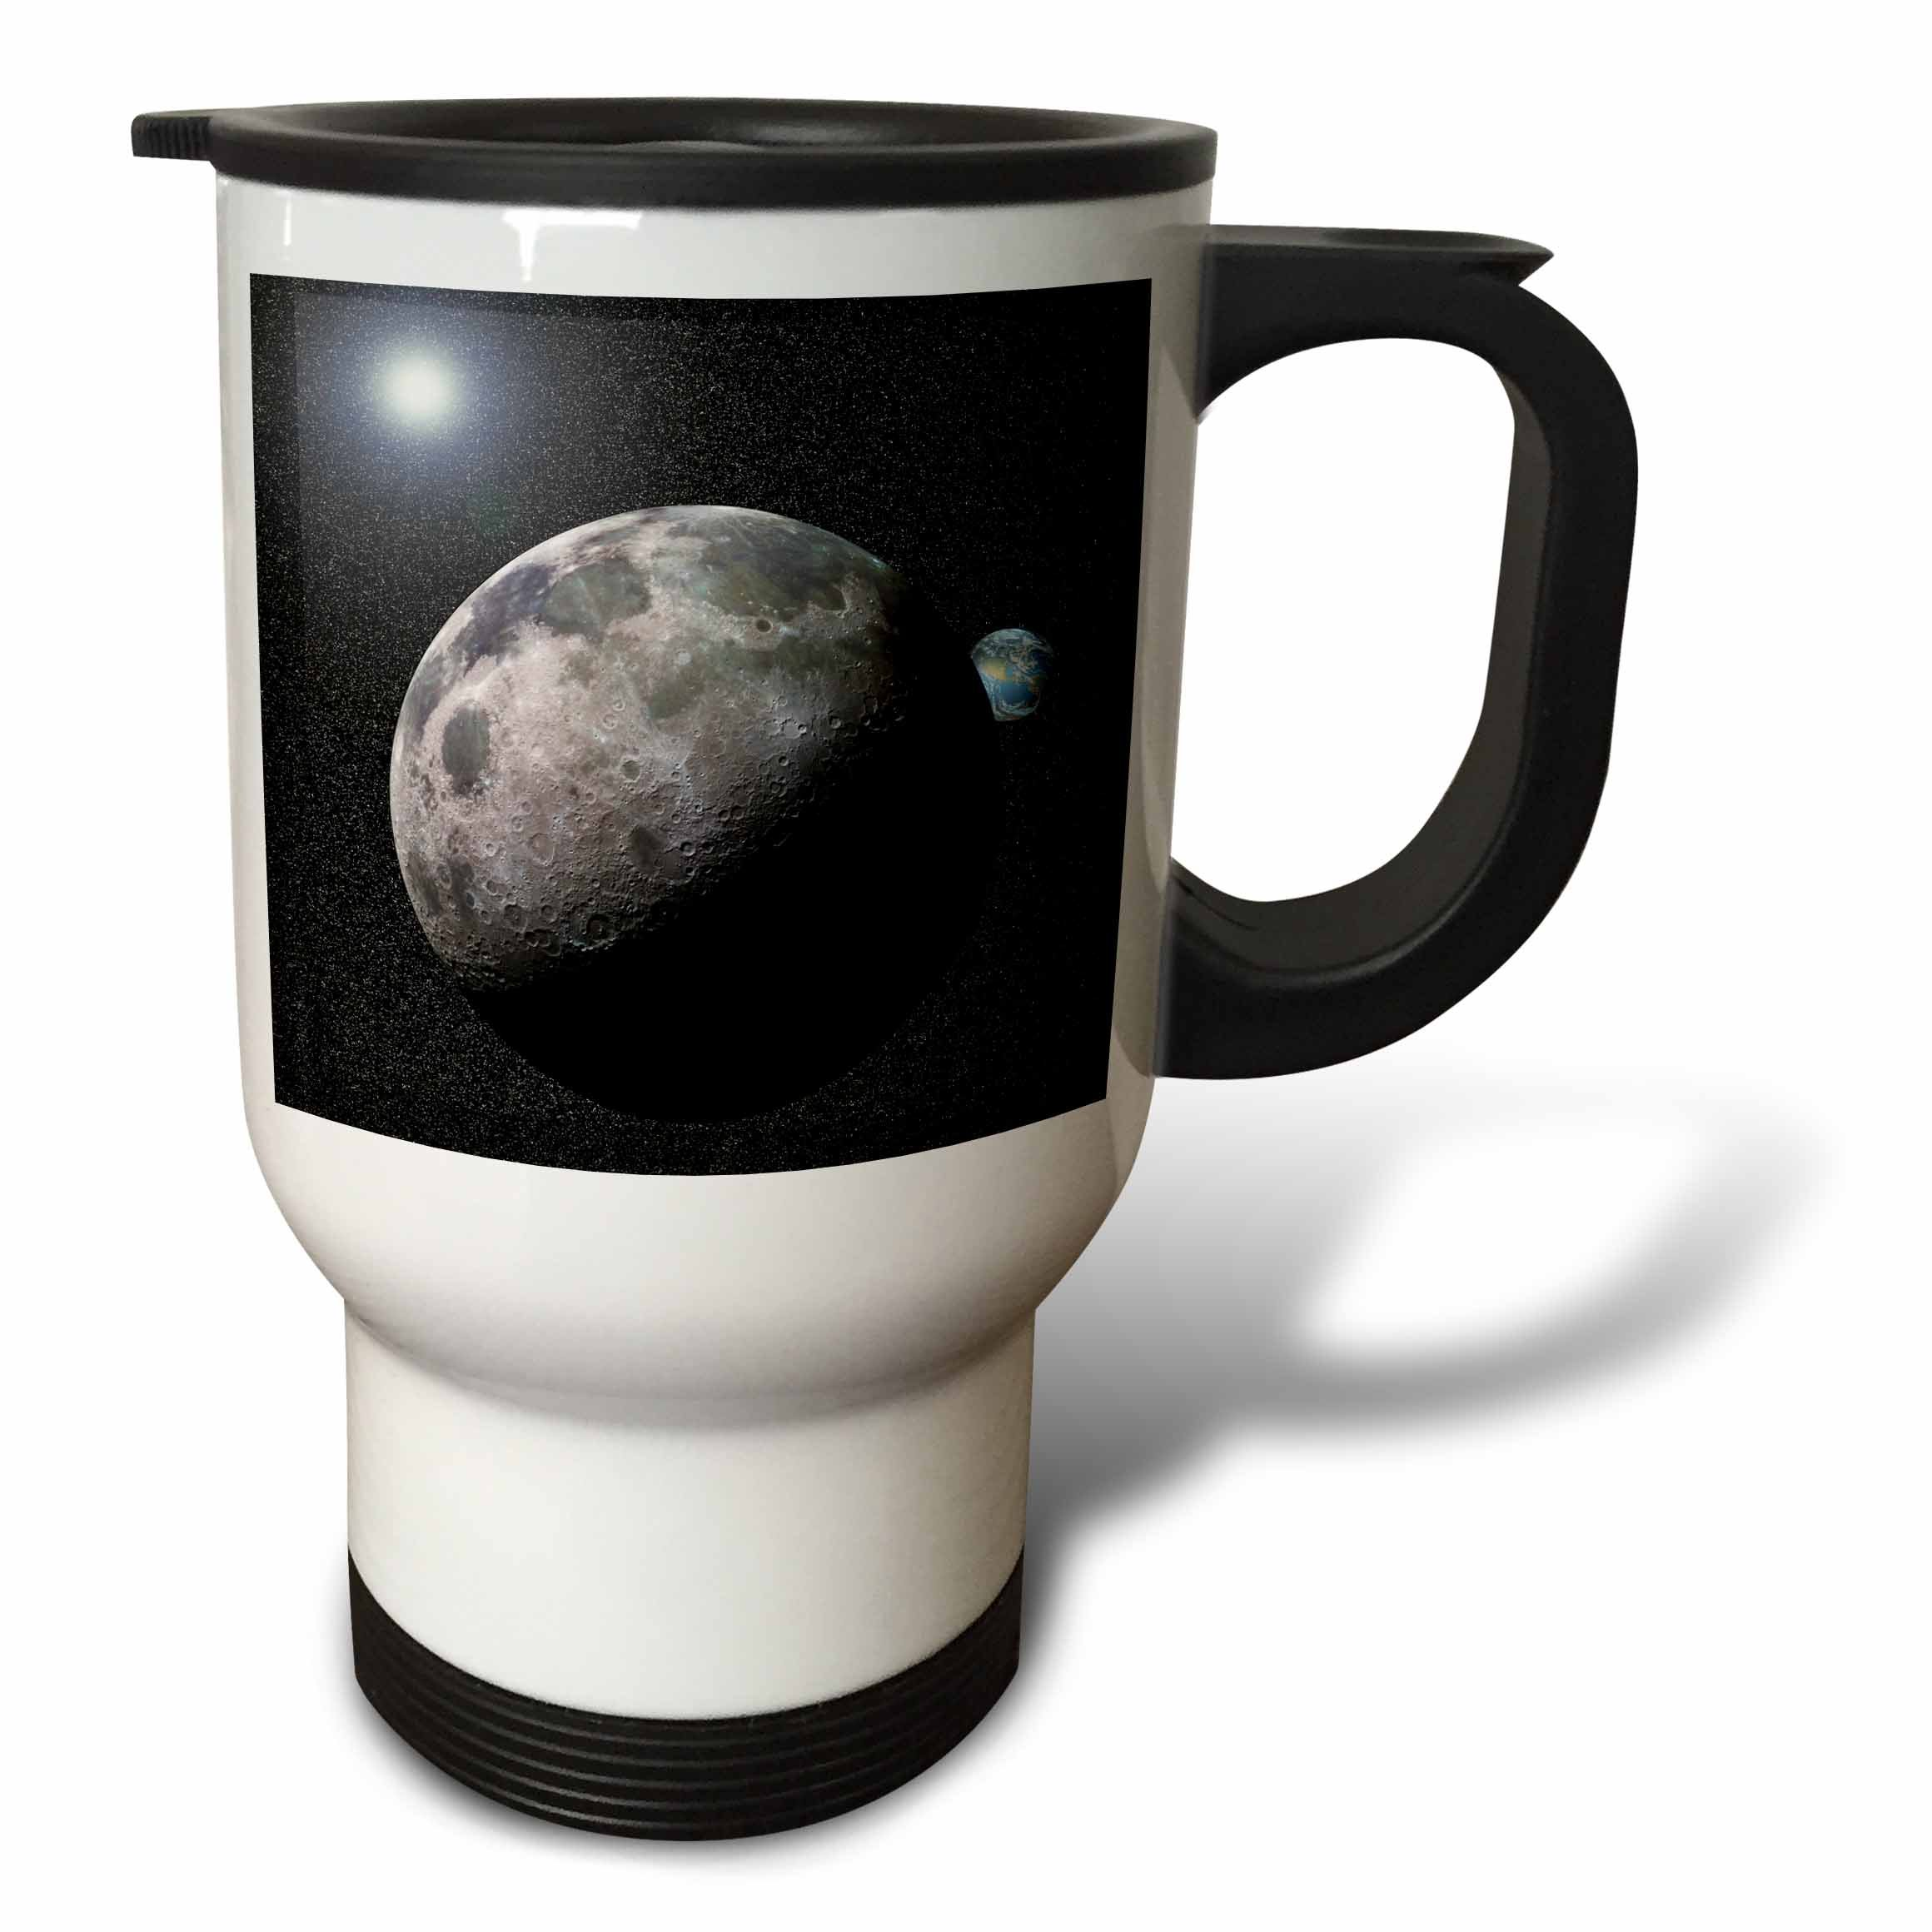 3dRose tm_19949_1 Moon Dance Solar System Scene of Planet Earth and Moon Dancing in Space Orbit Travel Mug, 14-Ounce, Stainless Steel